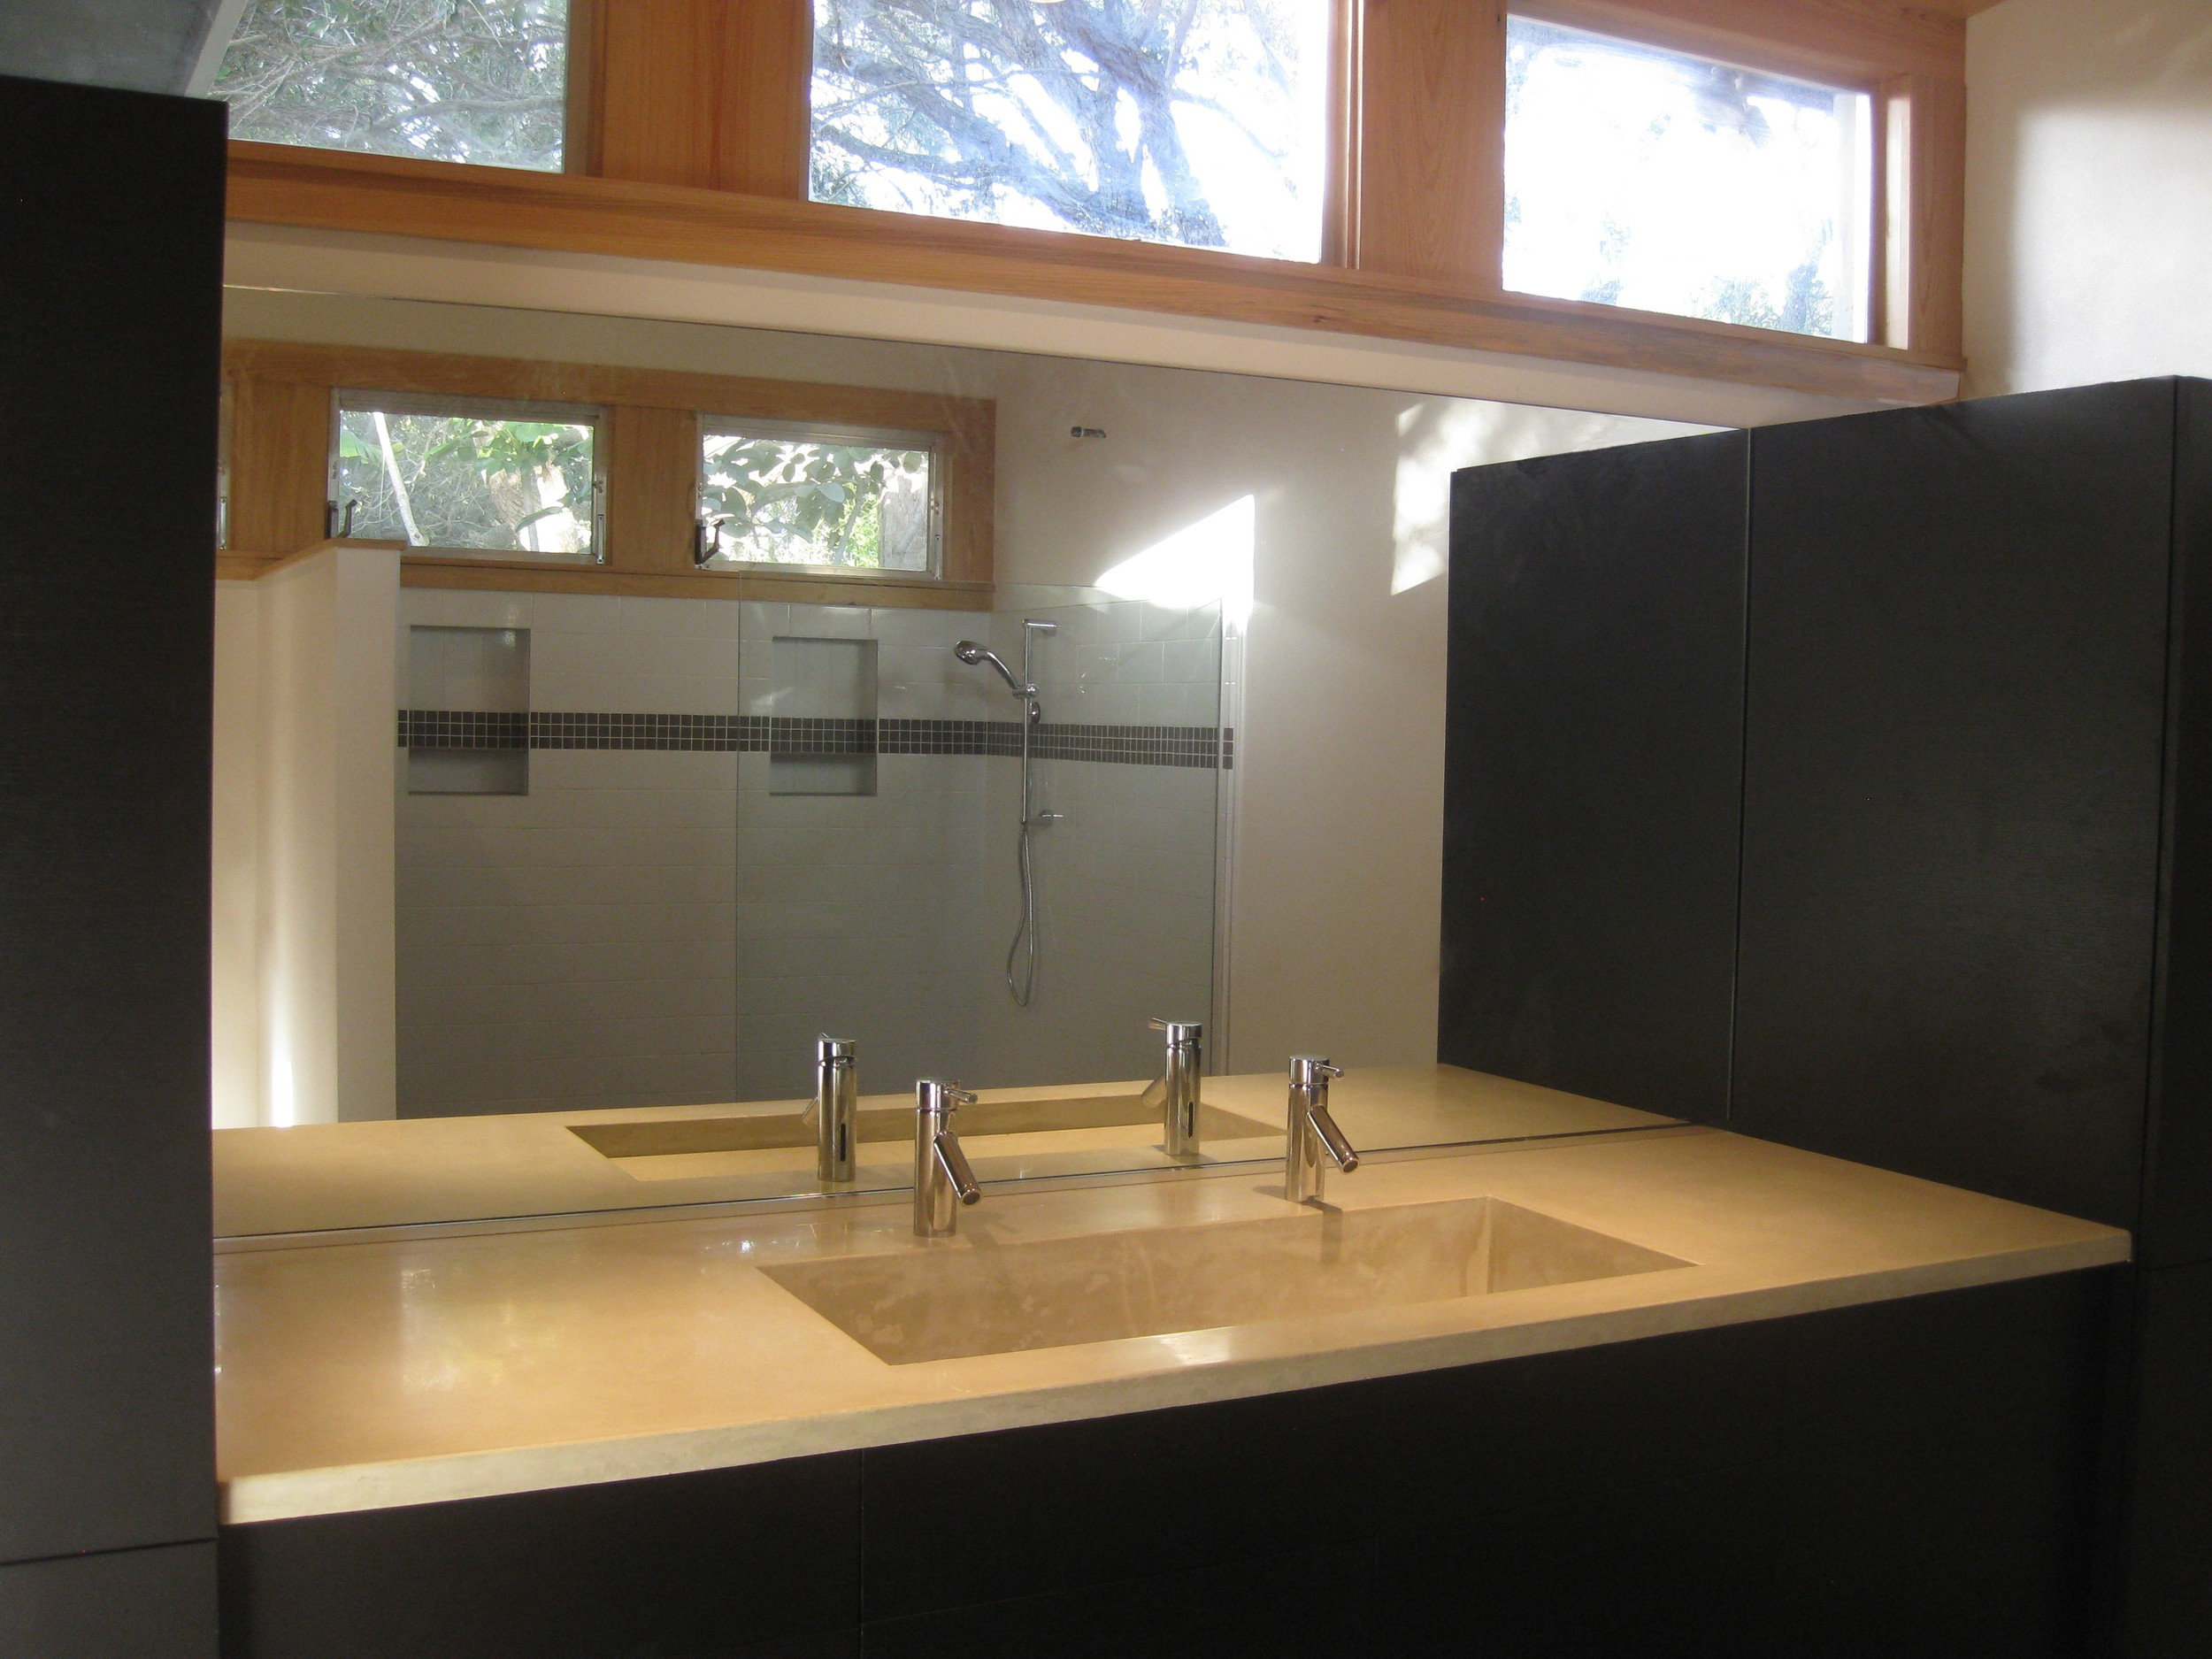 Master Bathroom renovation with custom concrete sink and Cabico cabinetry.